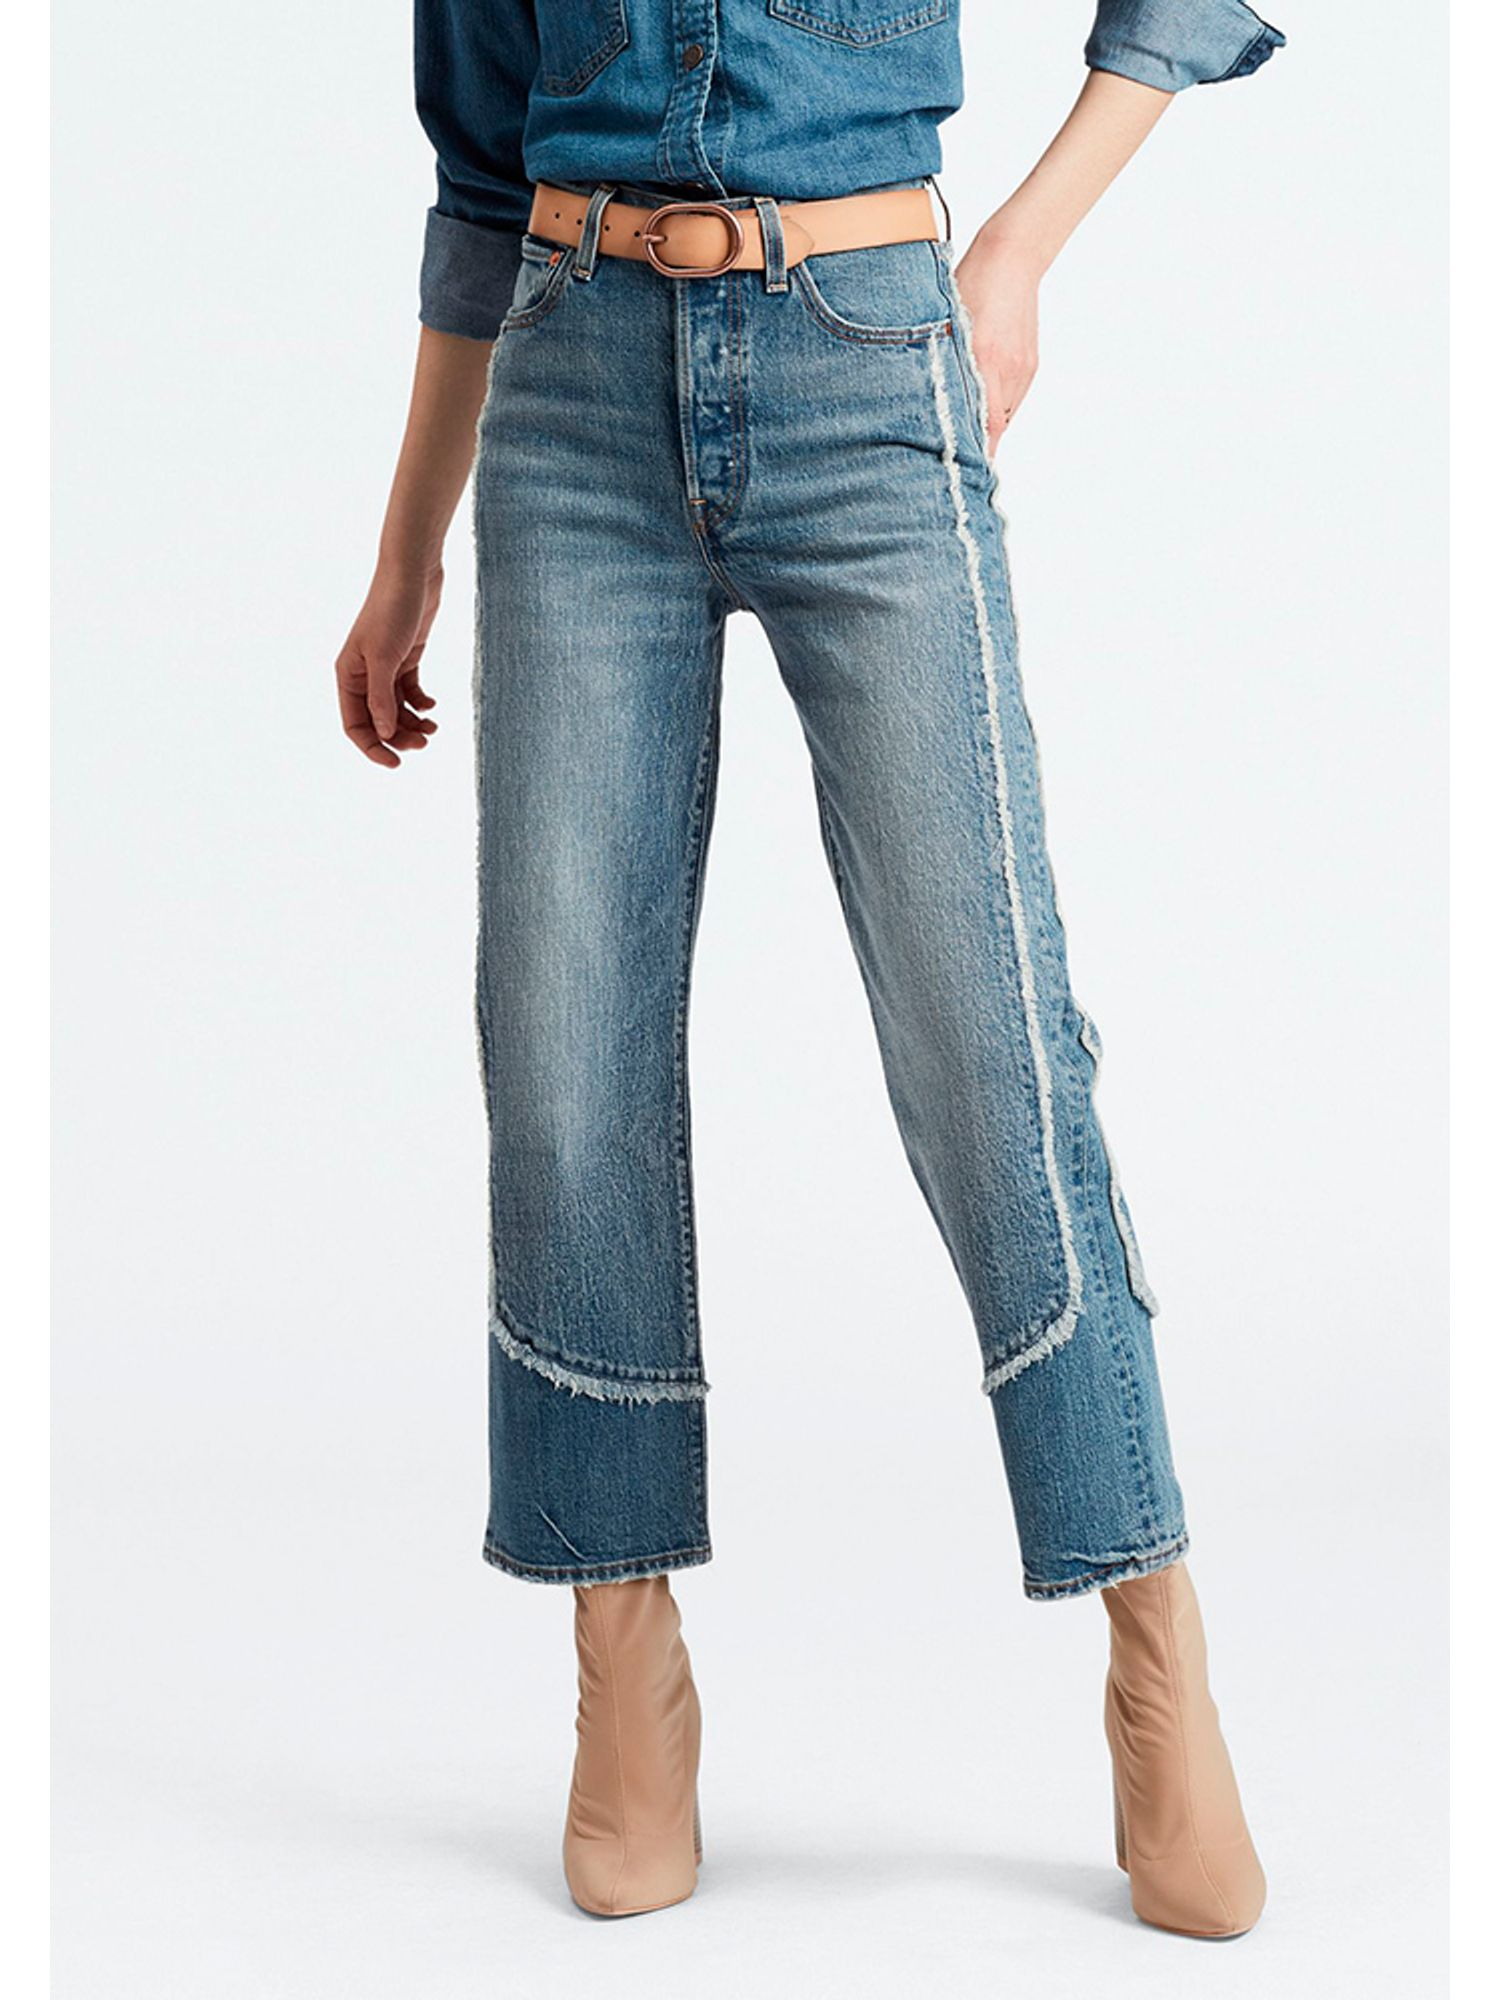 Ribcage_Straight_Ankle_Jeans_On_The_Fringe_1